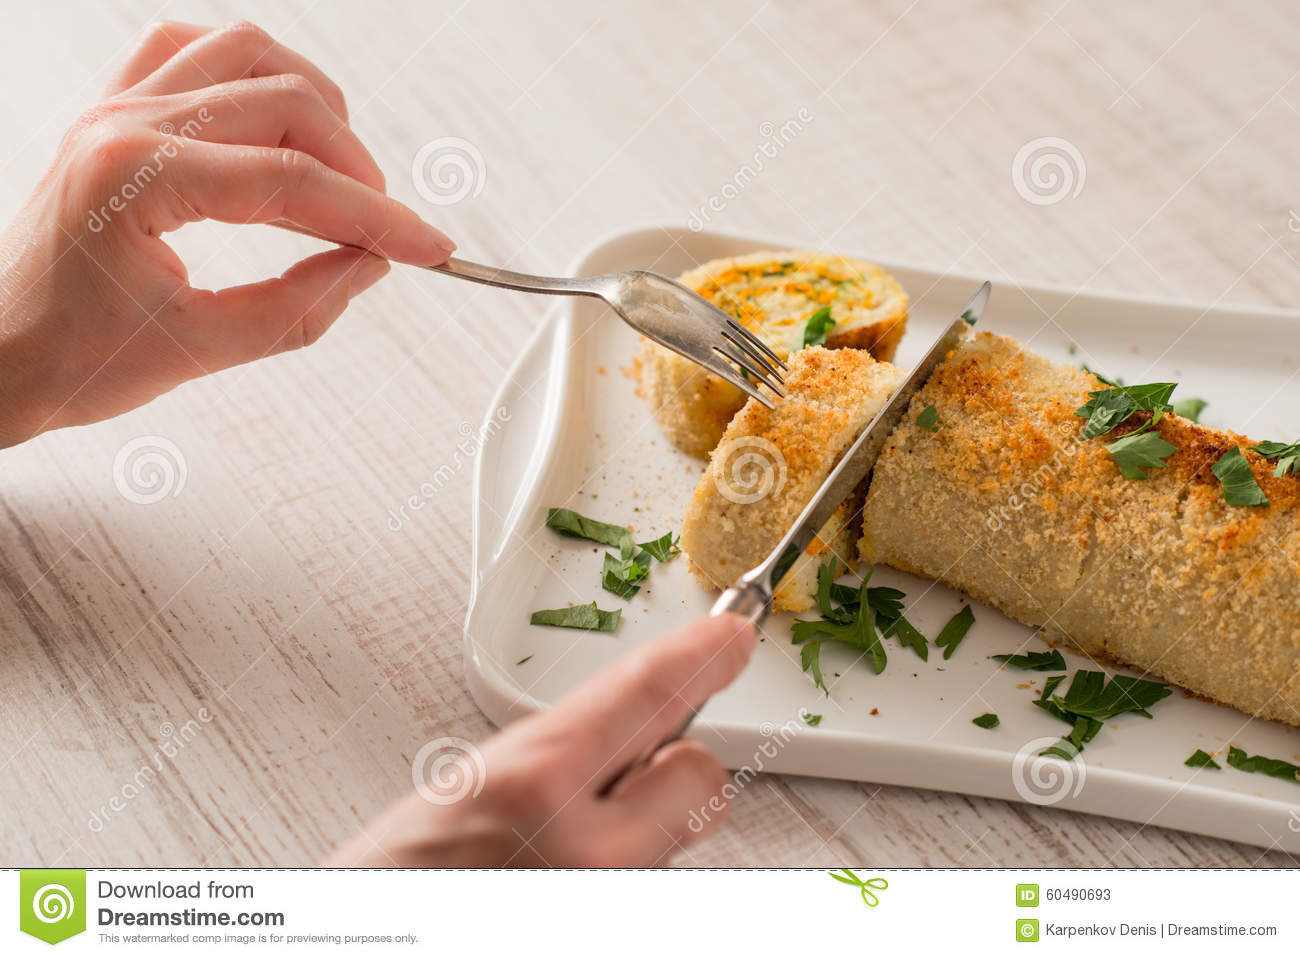 Eating fish roll with greens and carrots stock image for Dreaming of eating fish